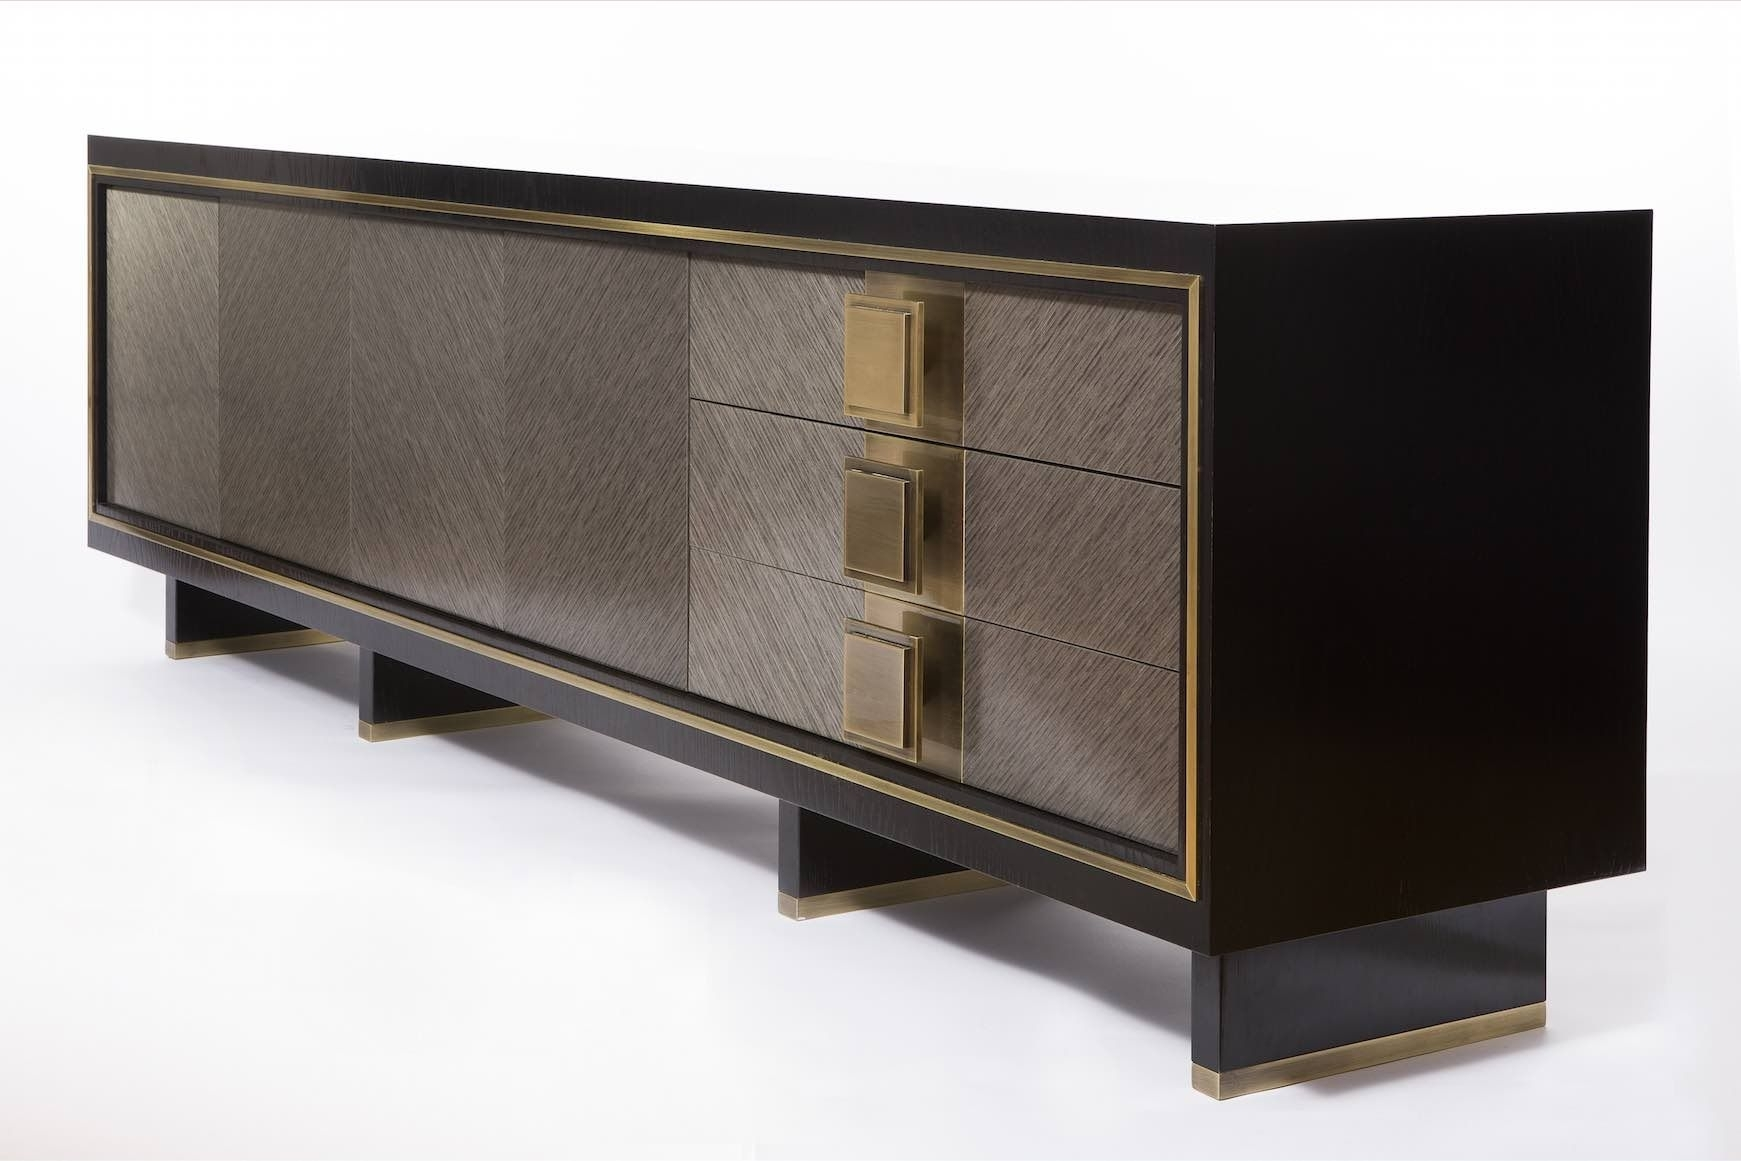 Luxury Sideboard. Grey And Dark Sideboard. Golden Details. Luxury pertaining to Diamond Circle Sideboards (Image 17 of 30)